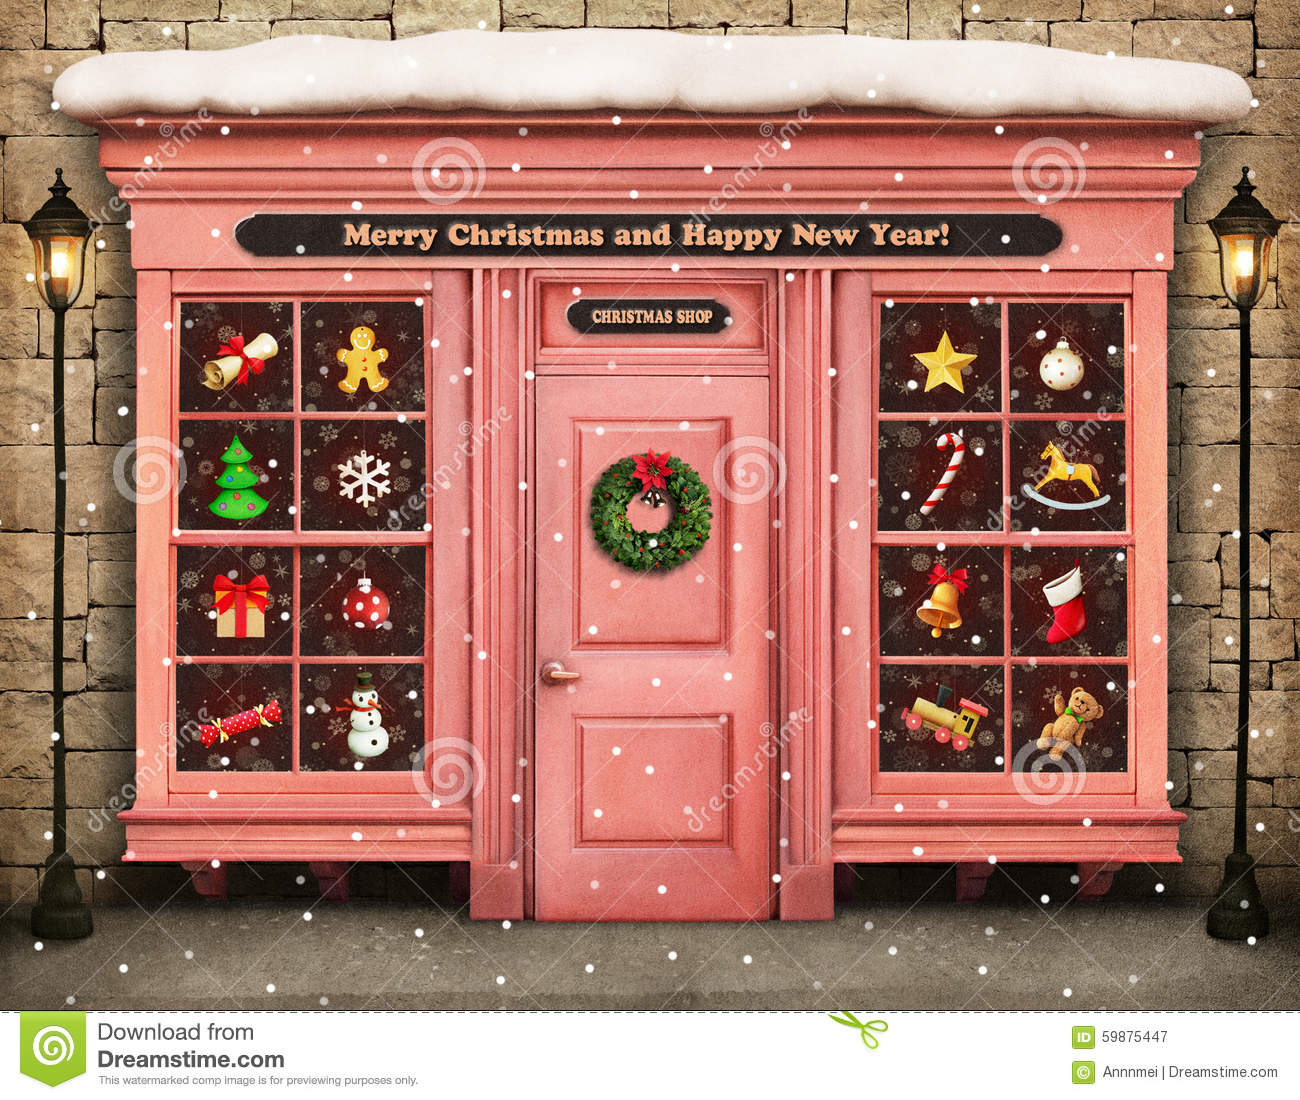 Christmas Shop Stock Image. Image Of Gift, Celebration